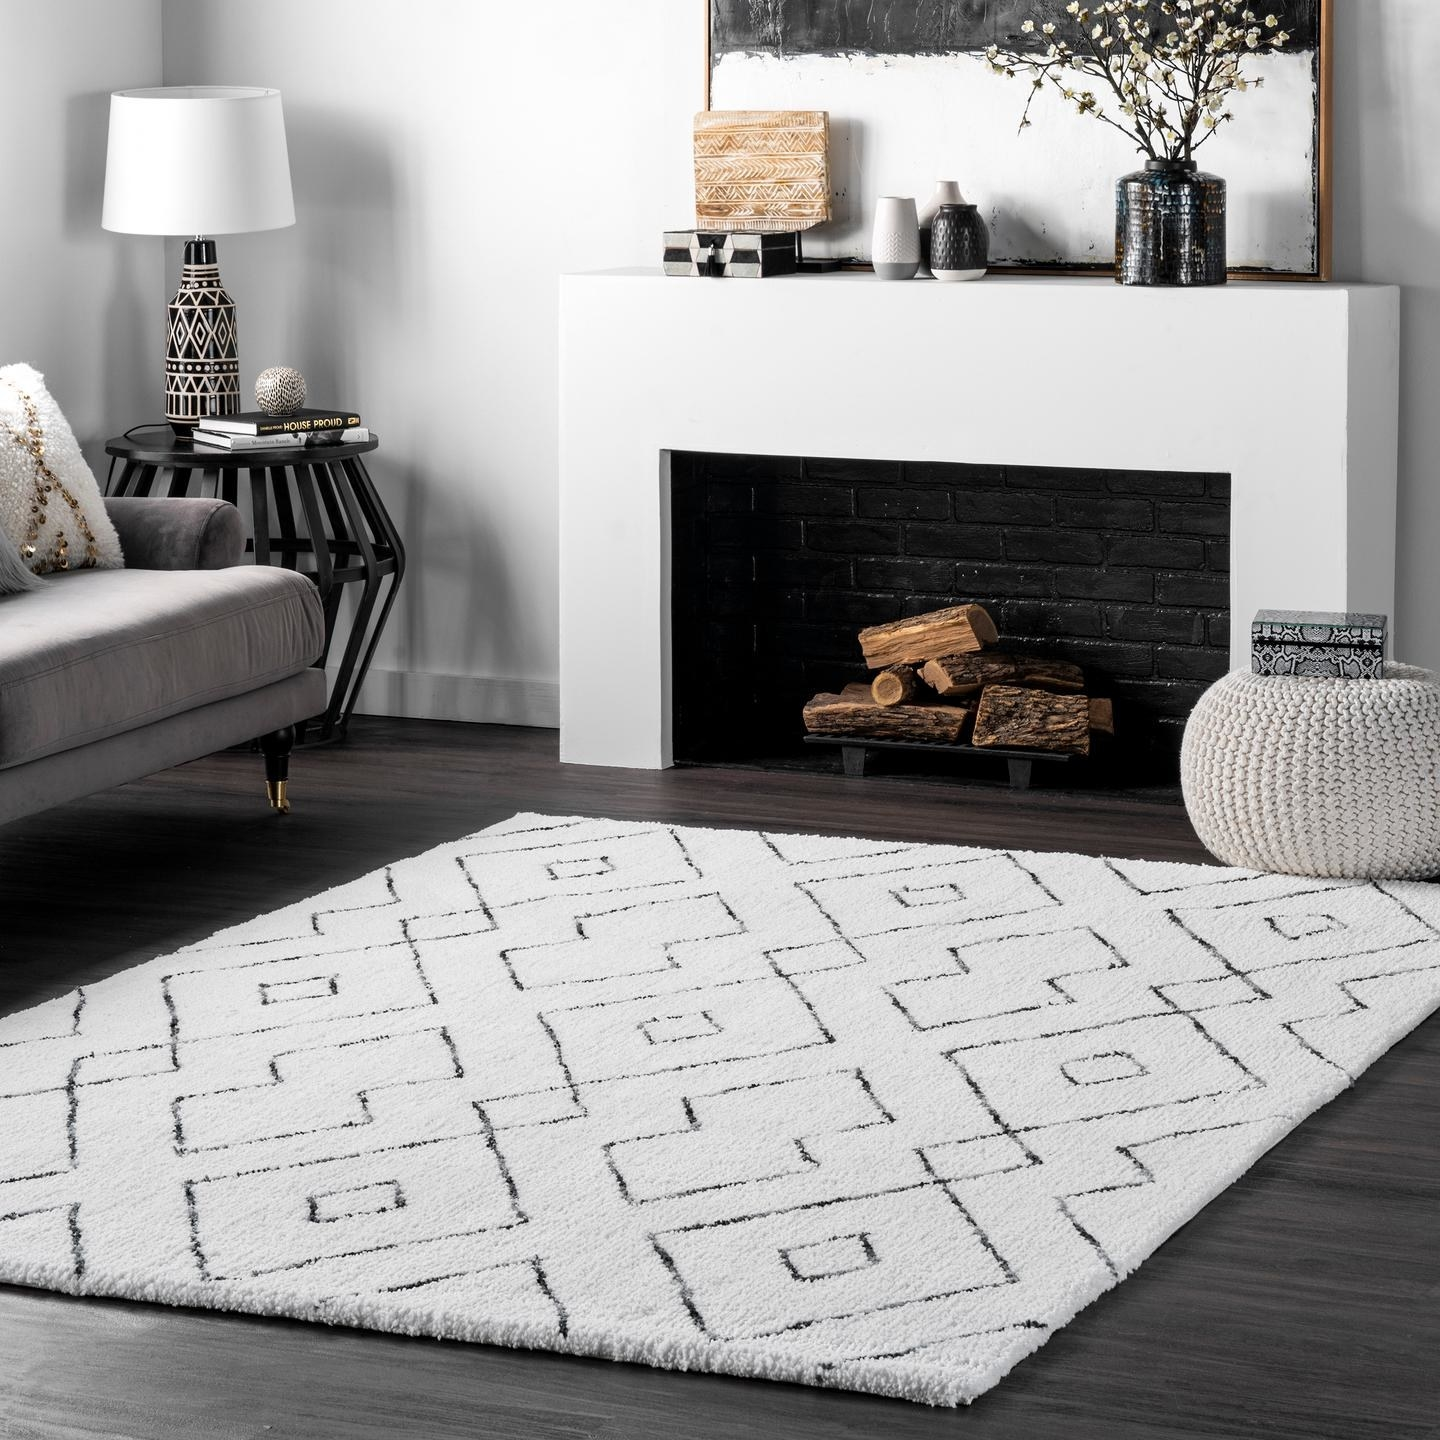 The area rug